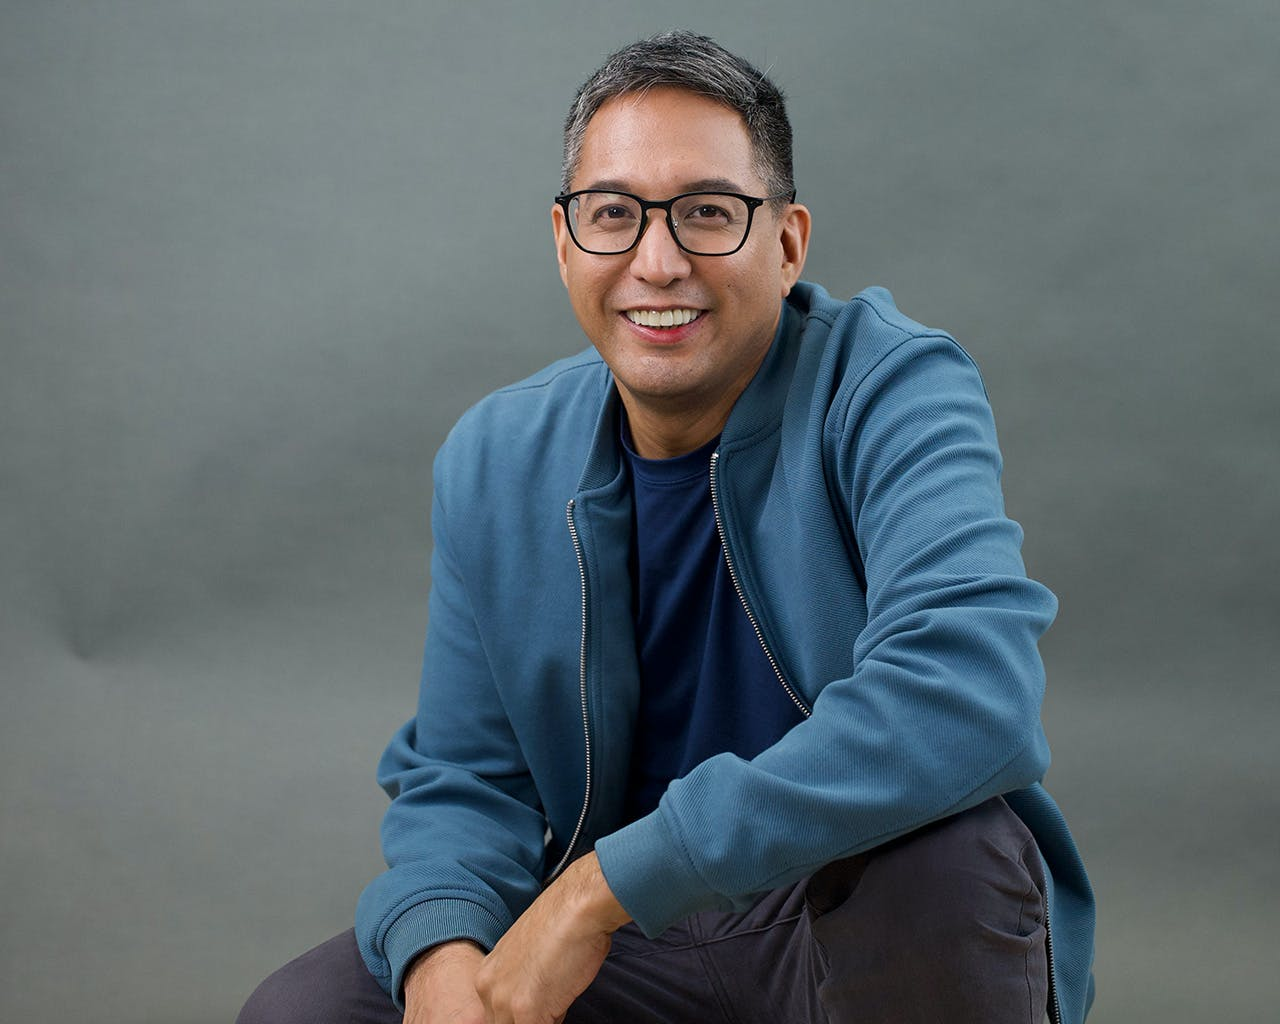 Engagement And Fatherhood By Adoption: You Haven't Heard Paolo Bediones' Real Story Yet